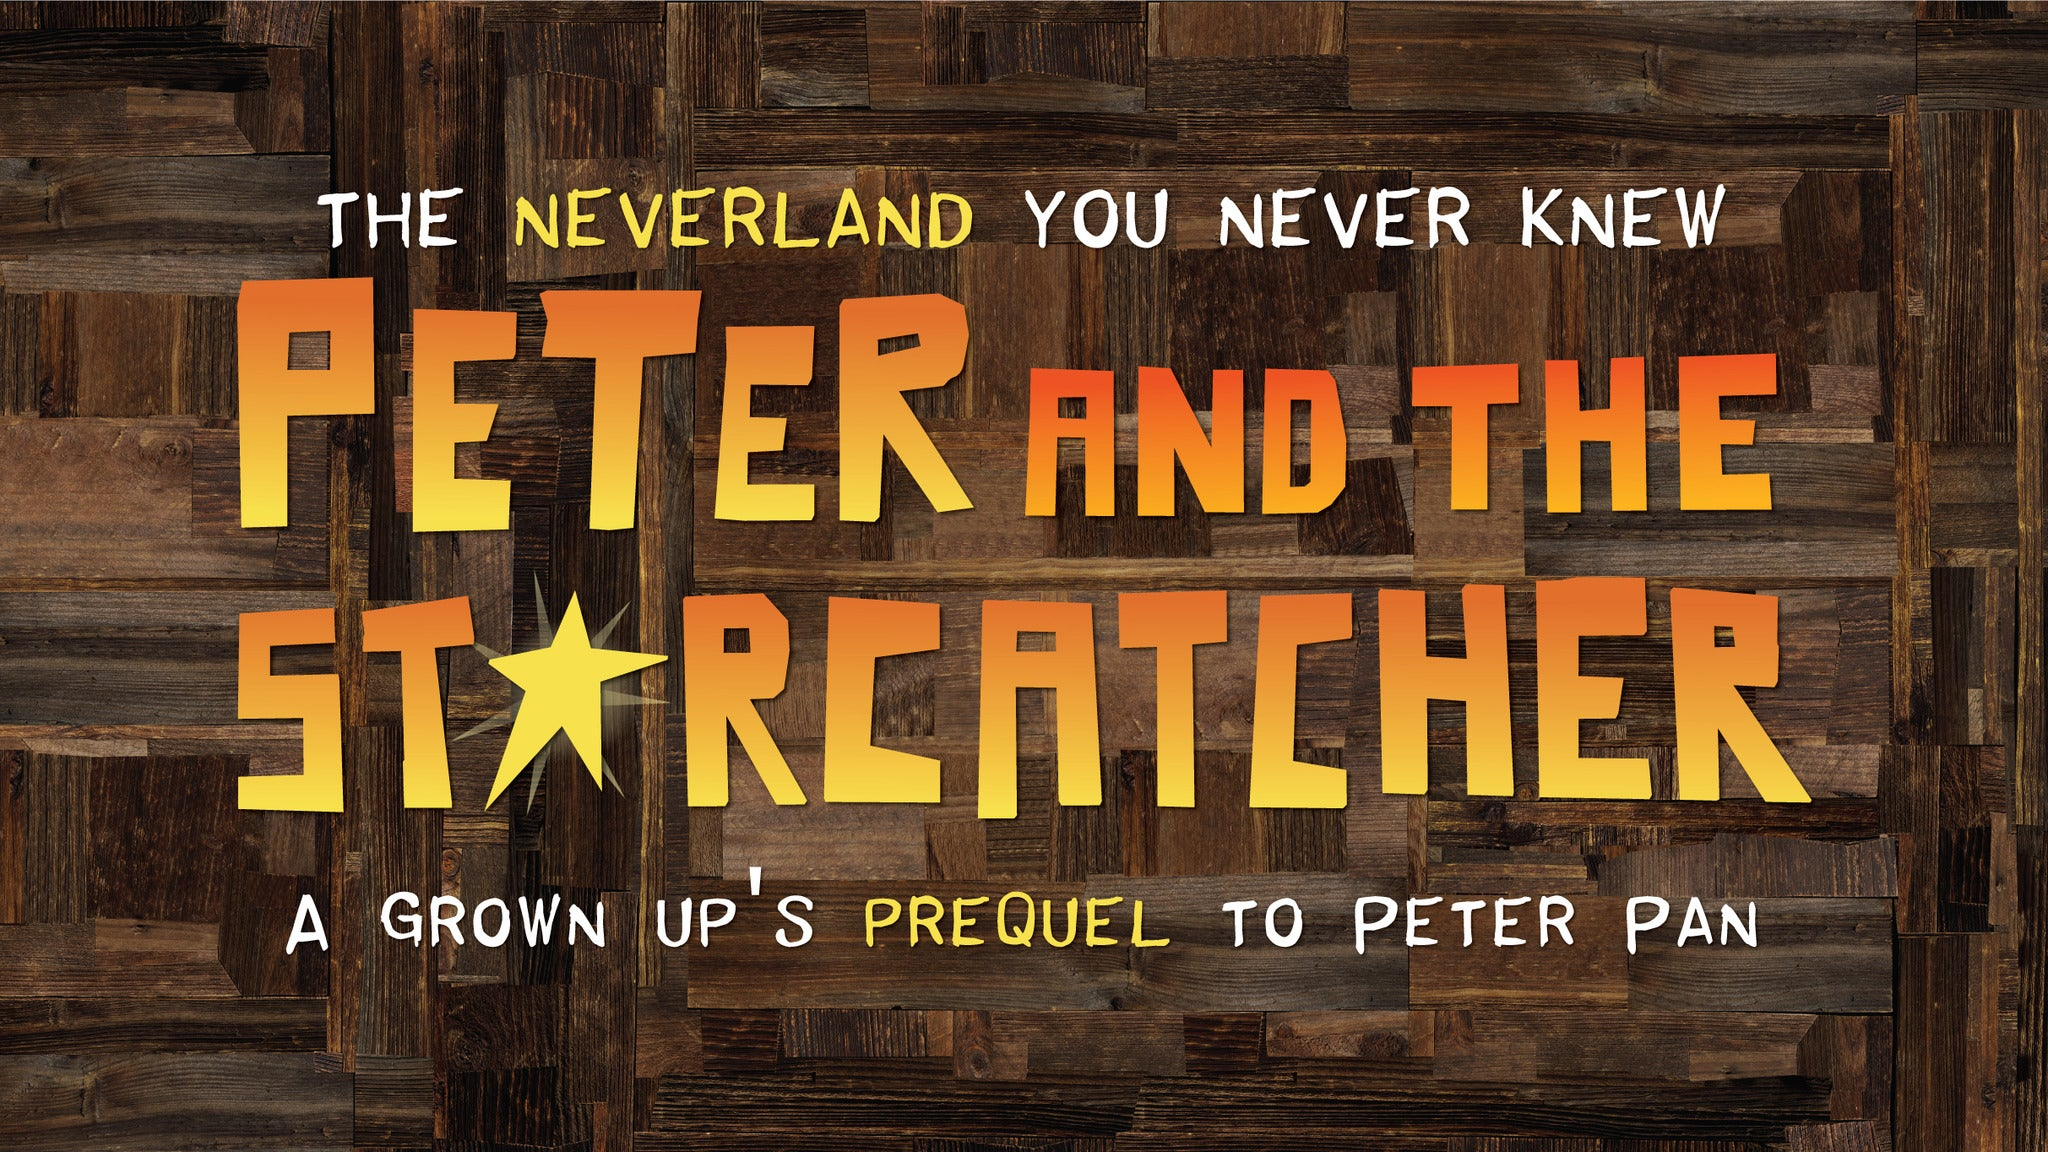 Peter and the Starcatcher at Mable House Barnes Amphitheatre